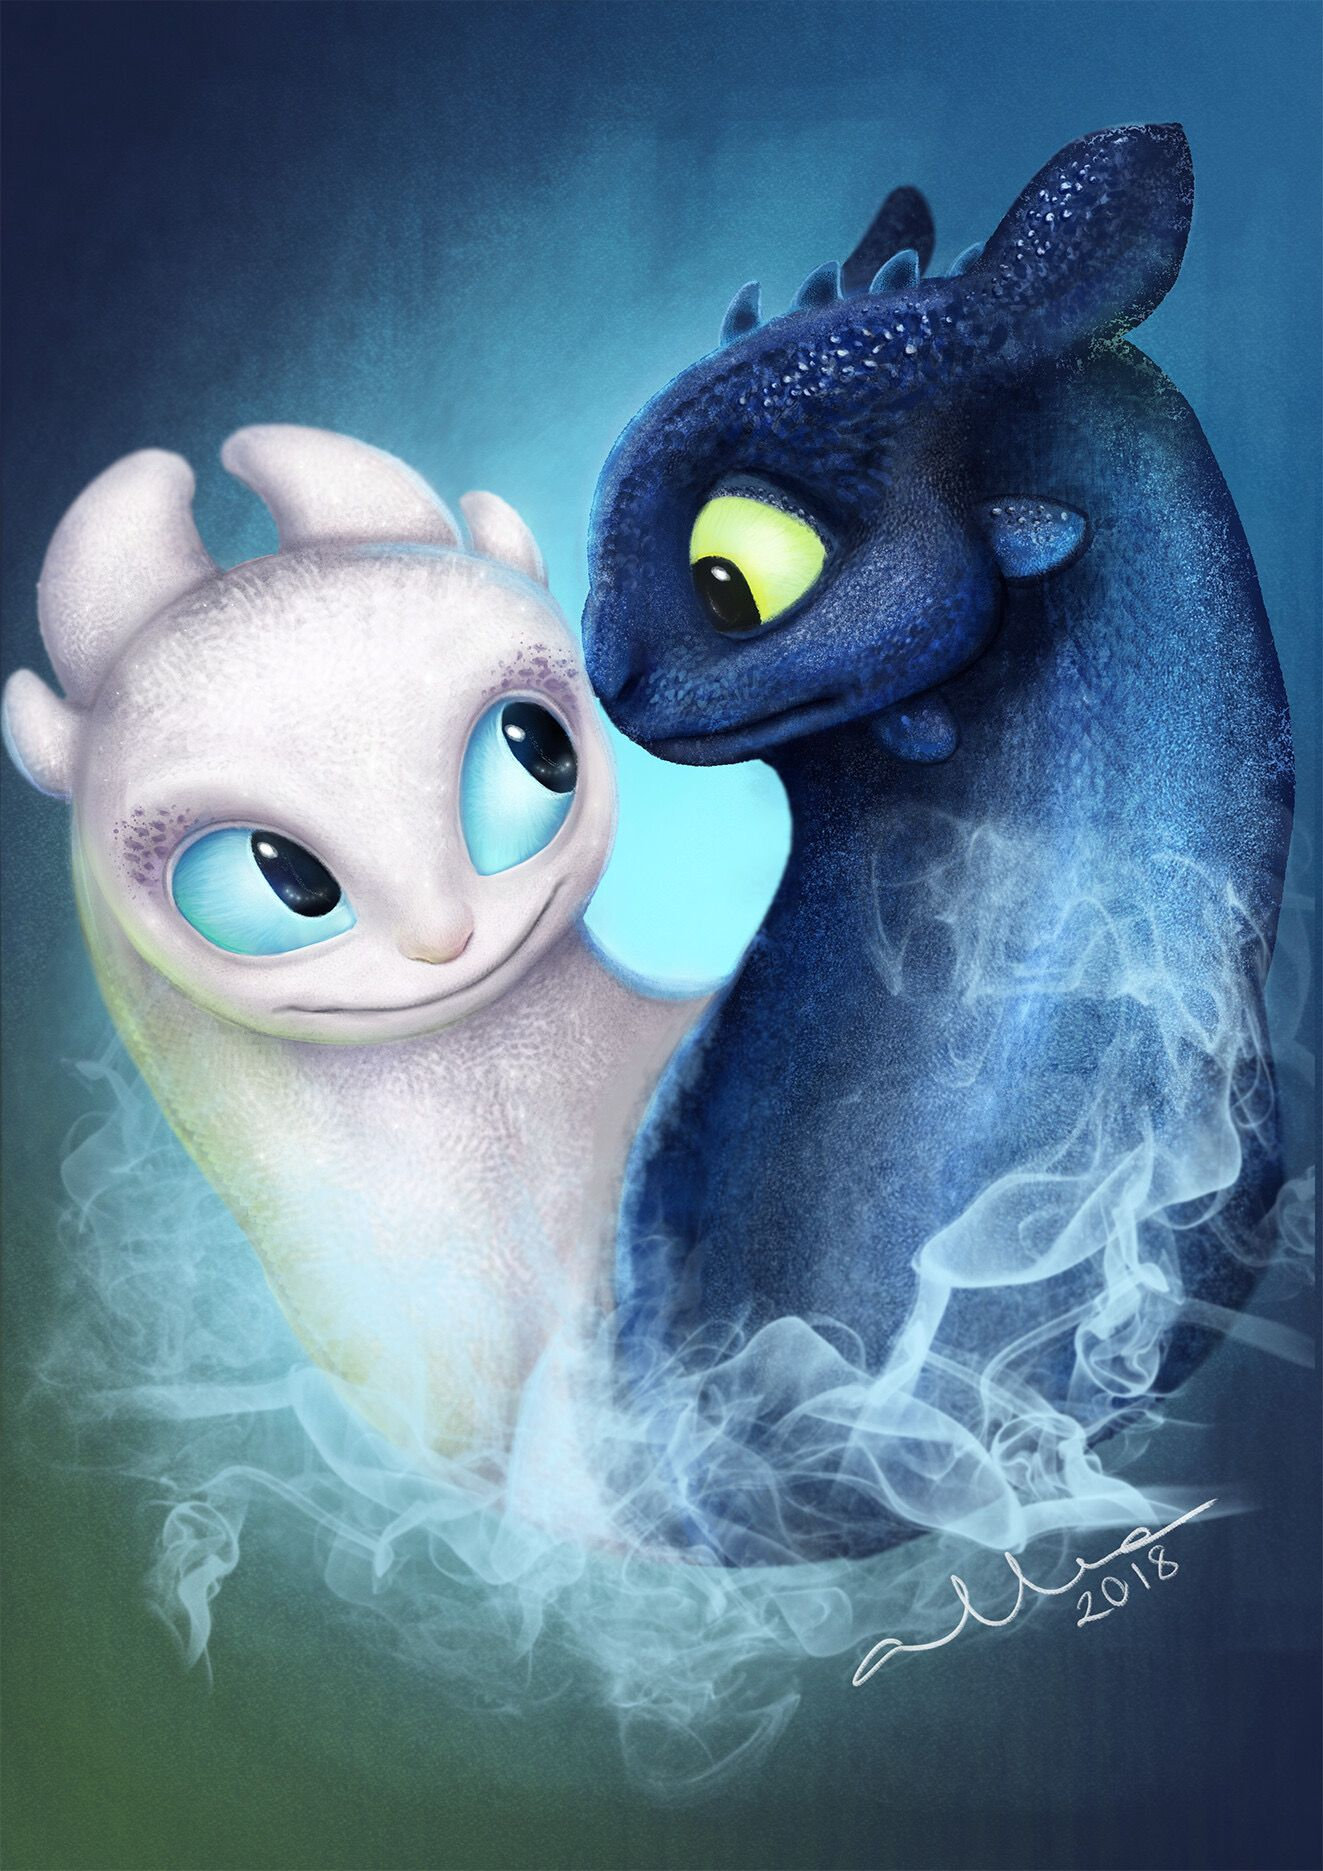 Cute Toothless And Light Fury : toothless, light, Toothless, Night, Mate,, Light, Dragon, Pictures,, Disney, Drawings,, Drawings